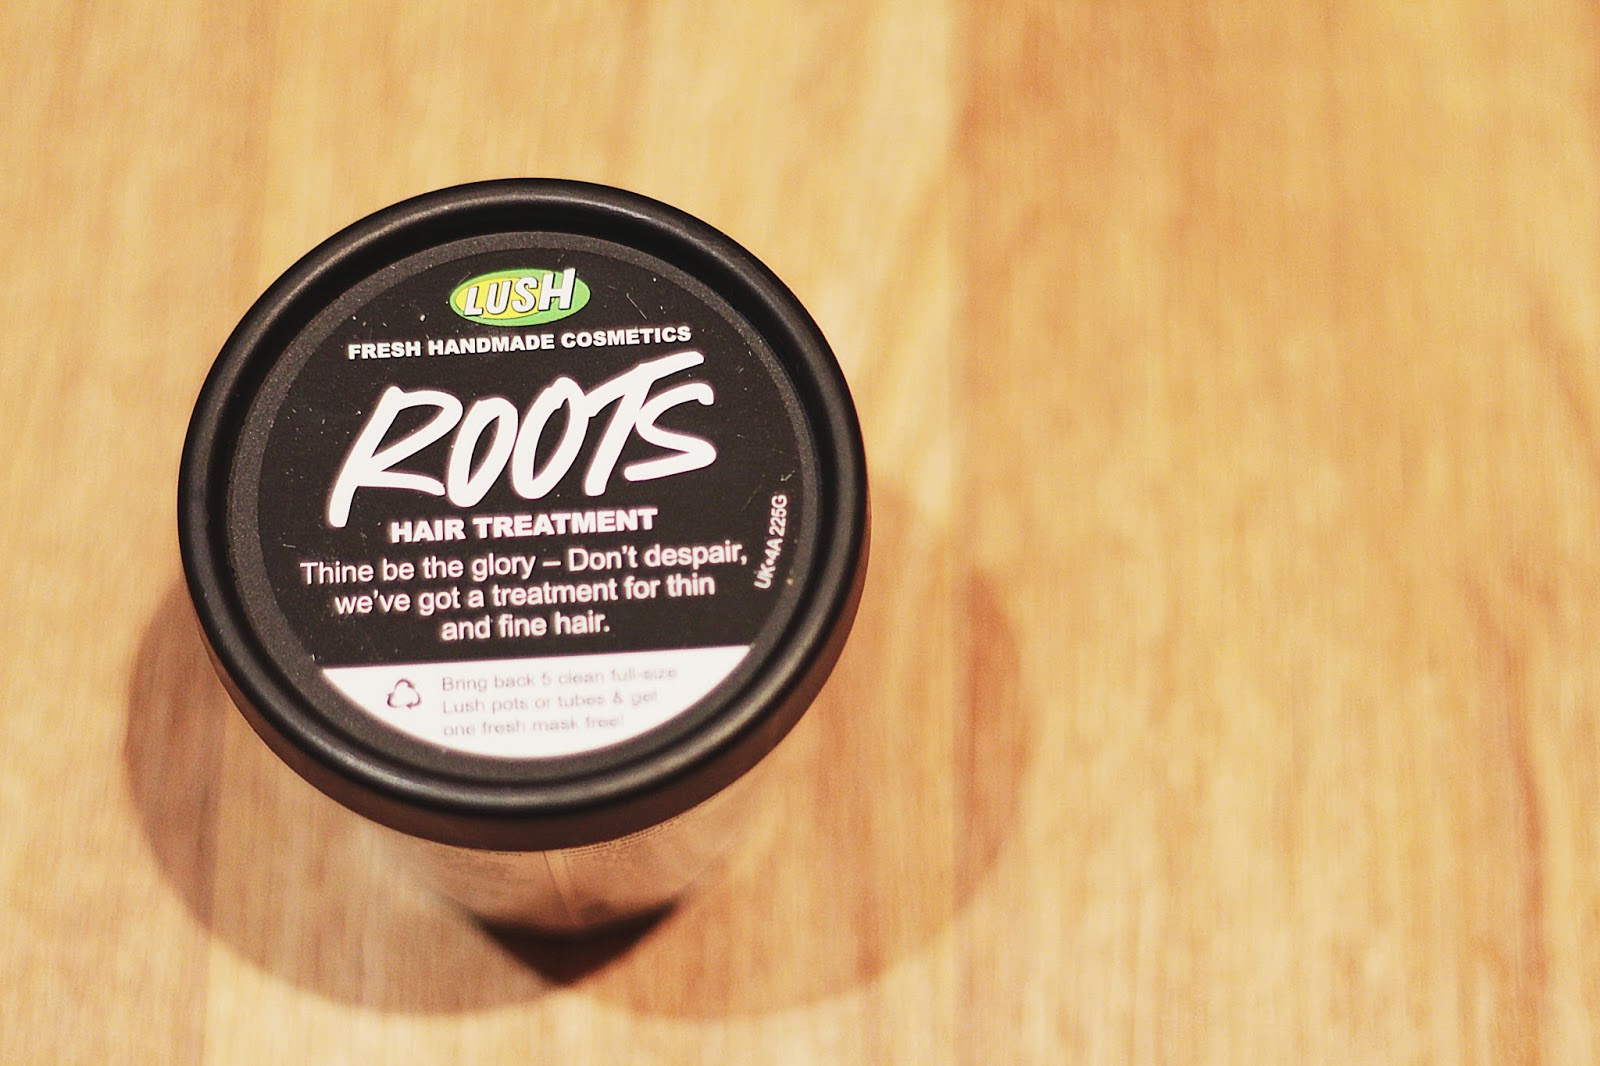 Lush ROOTS scalp treatment product outer